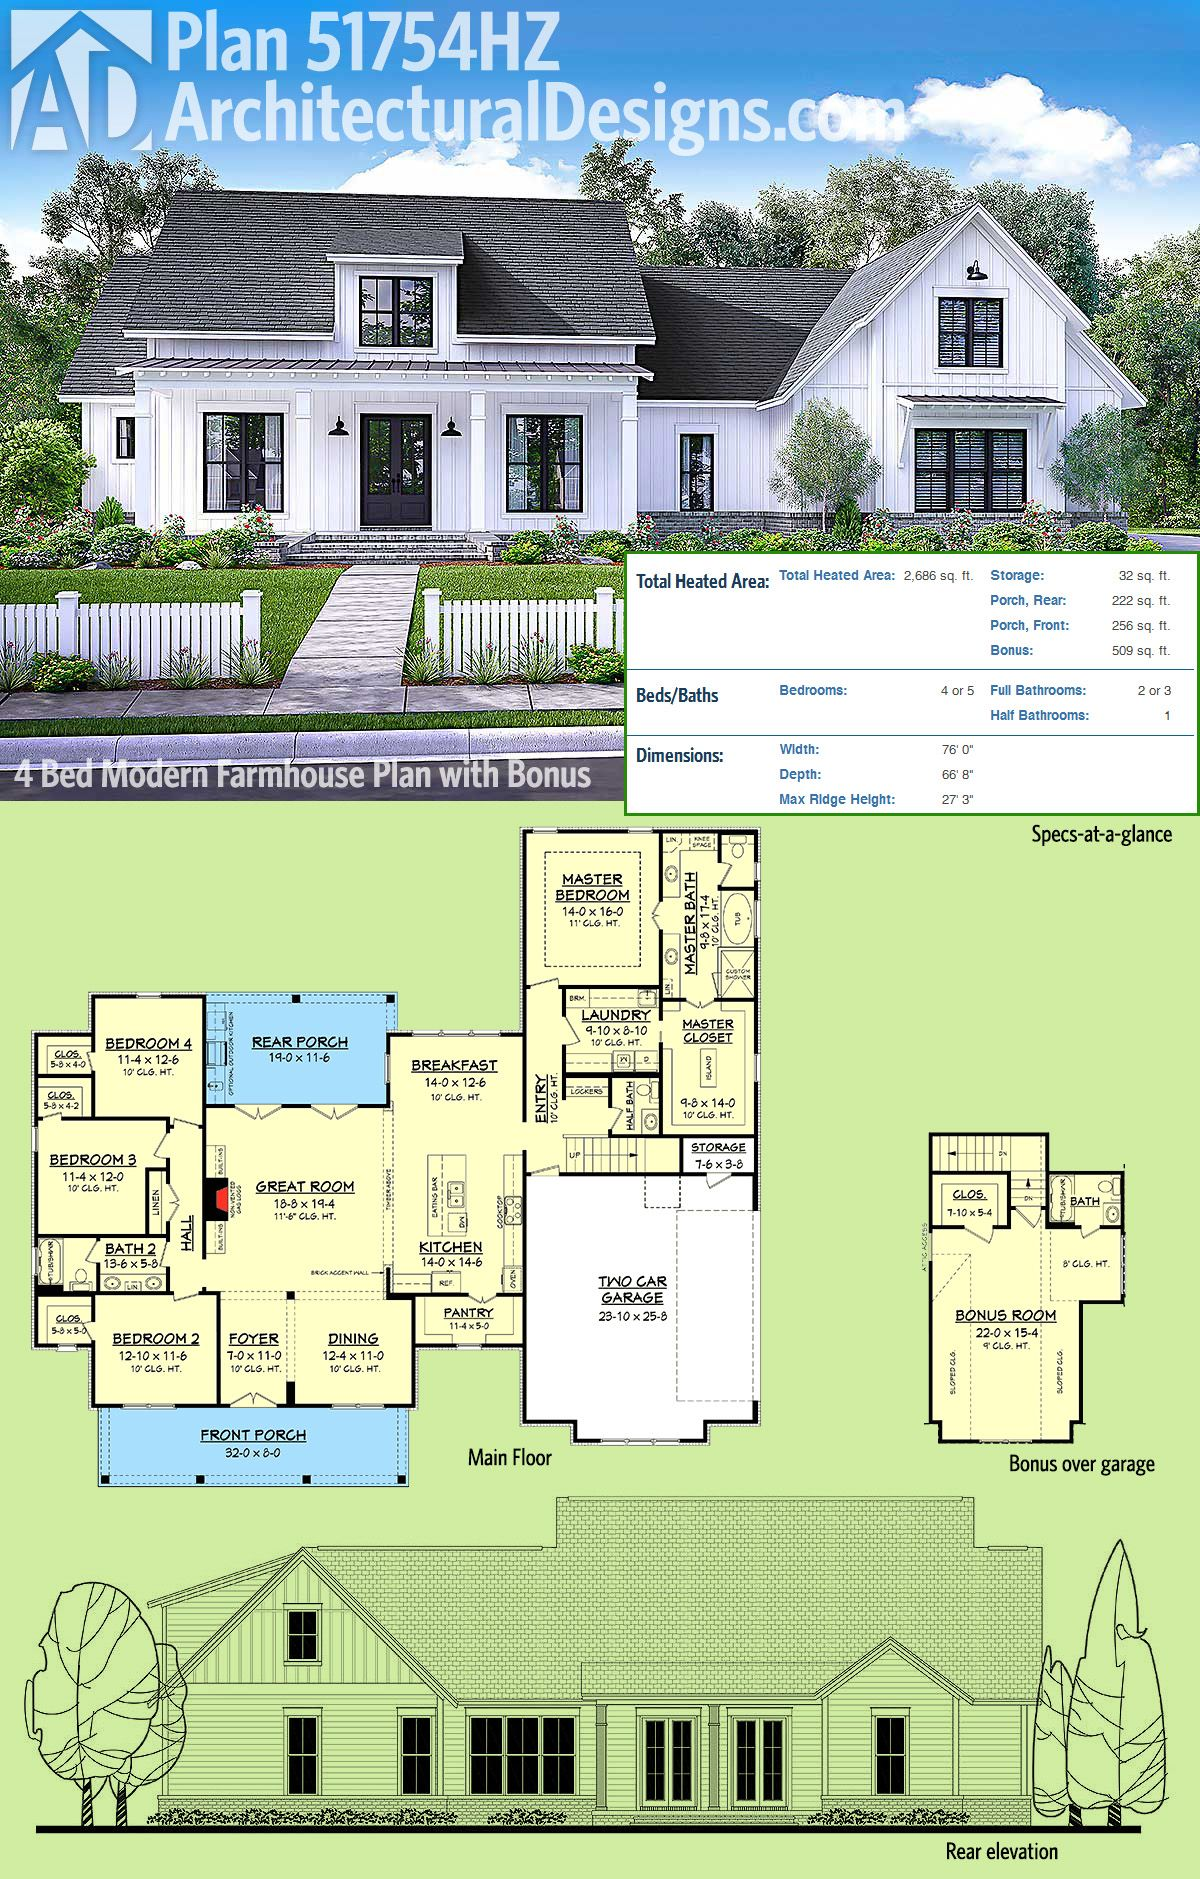 Plan 51754hz modern farmhouse plan with bonus room for 3000 sq ft gym layout